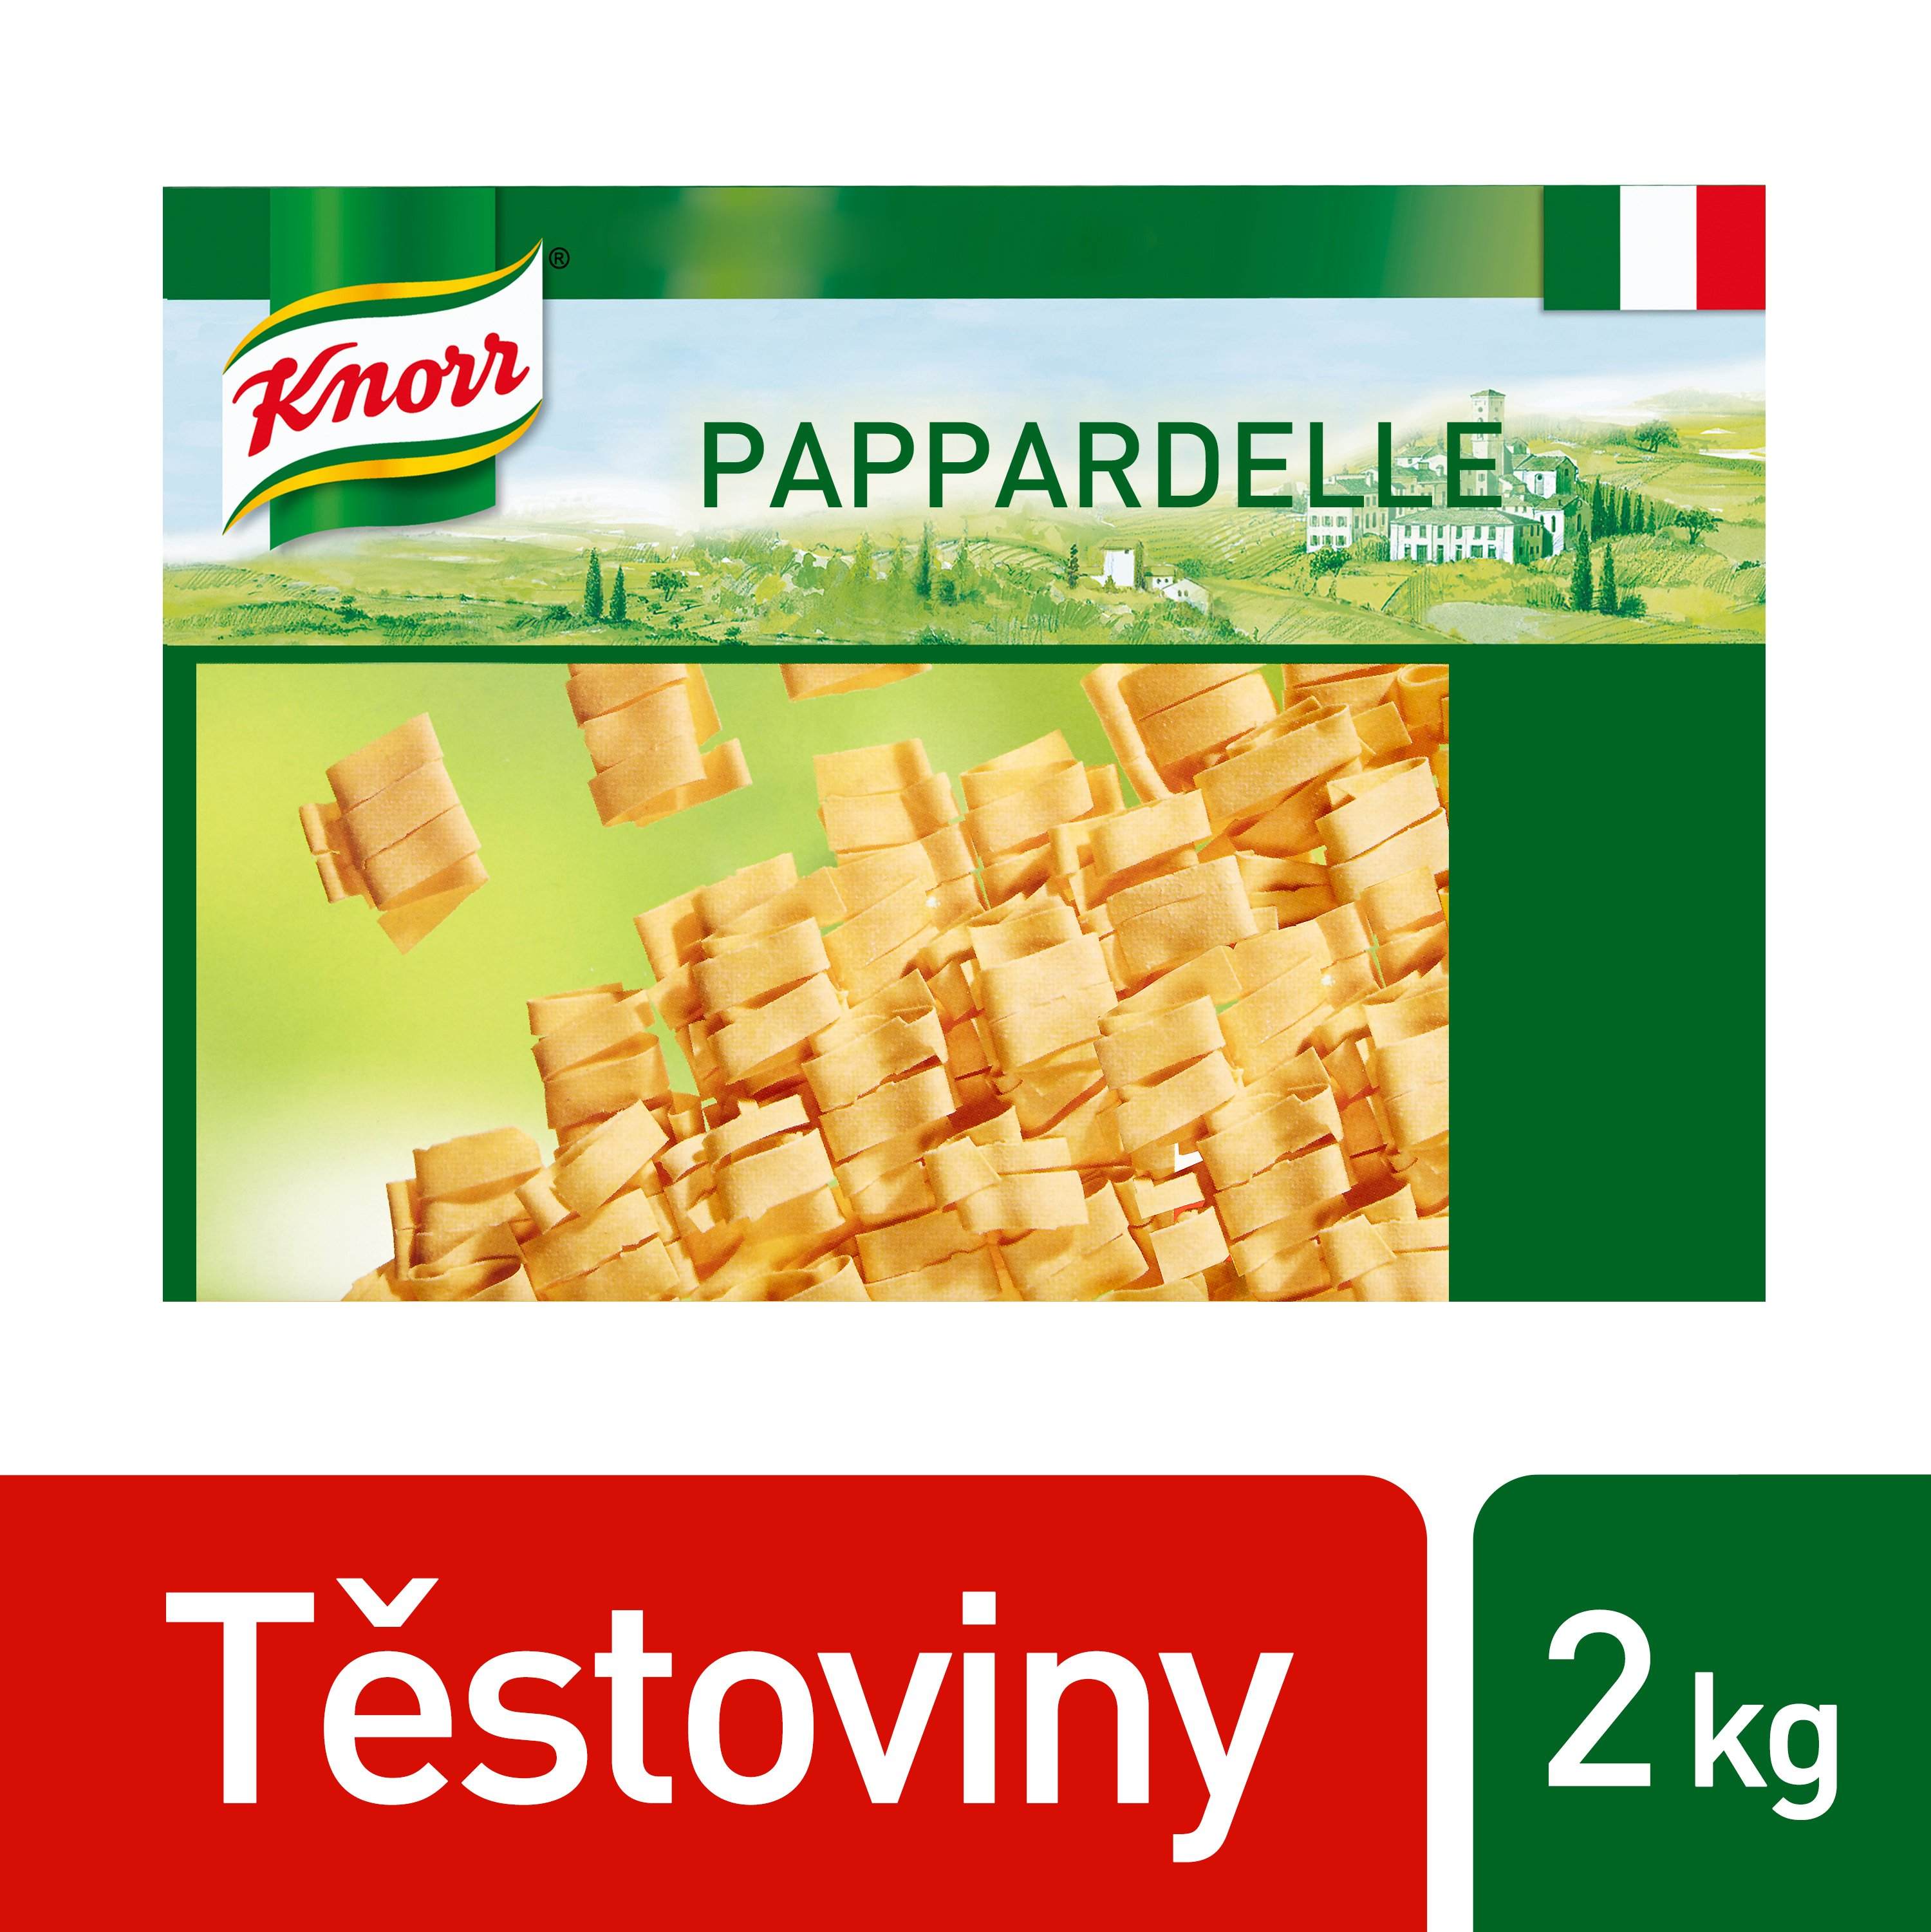 Knorr Pappardelle 2 kg